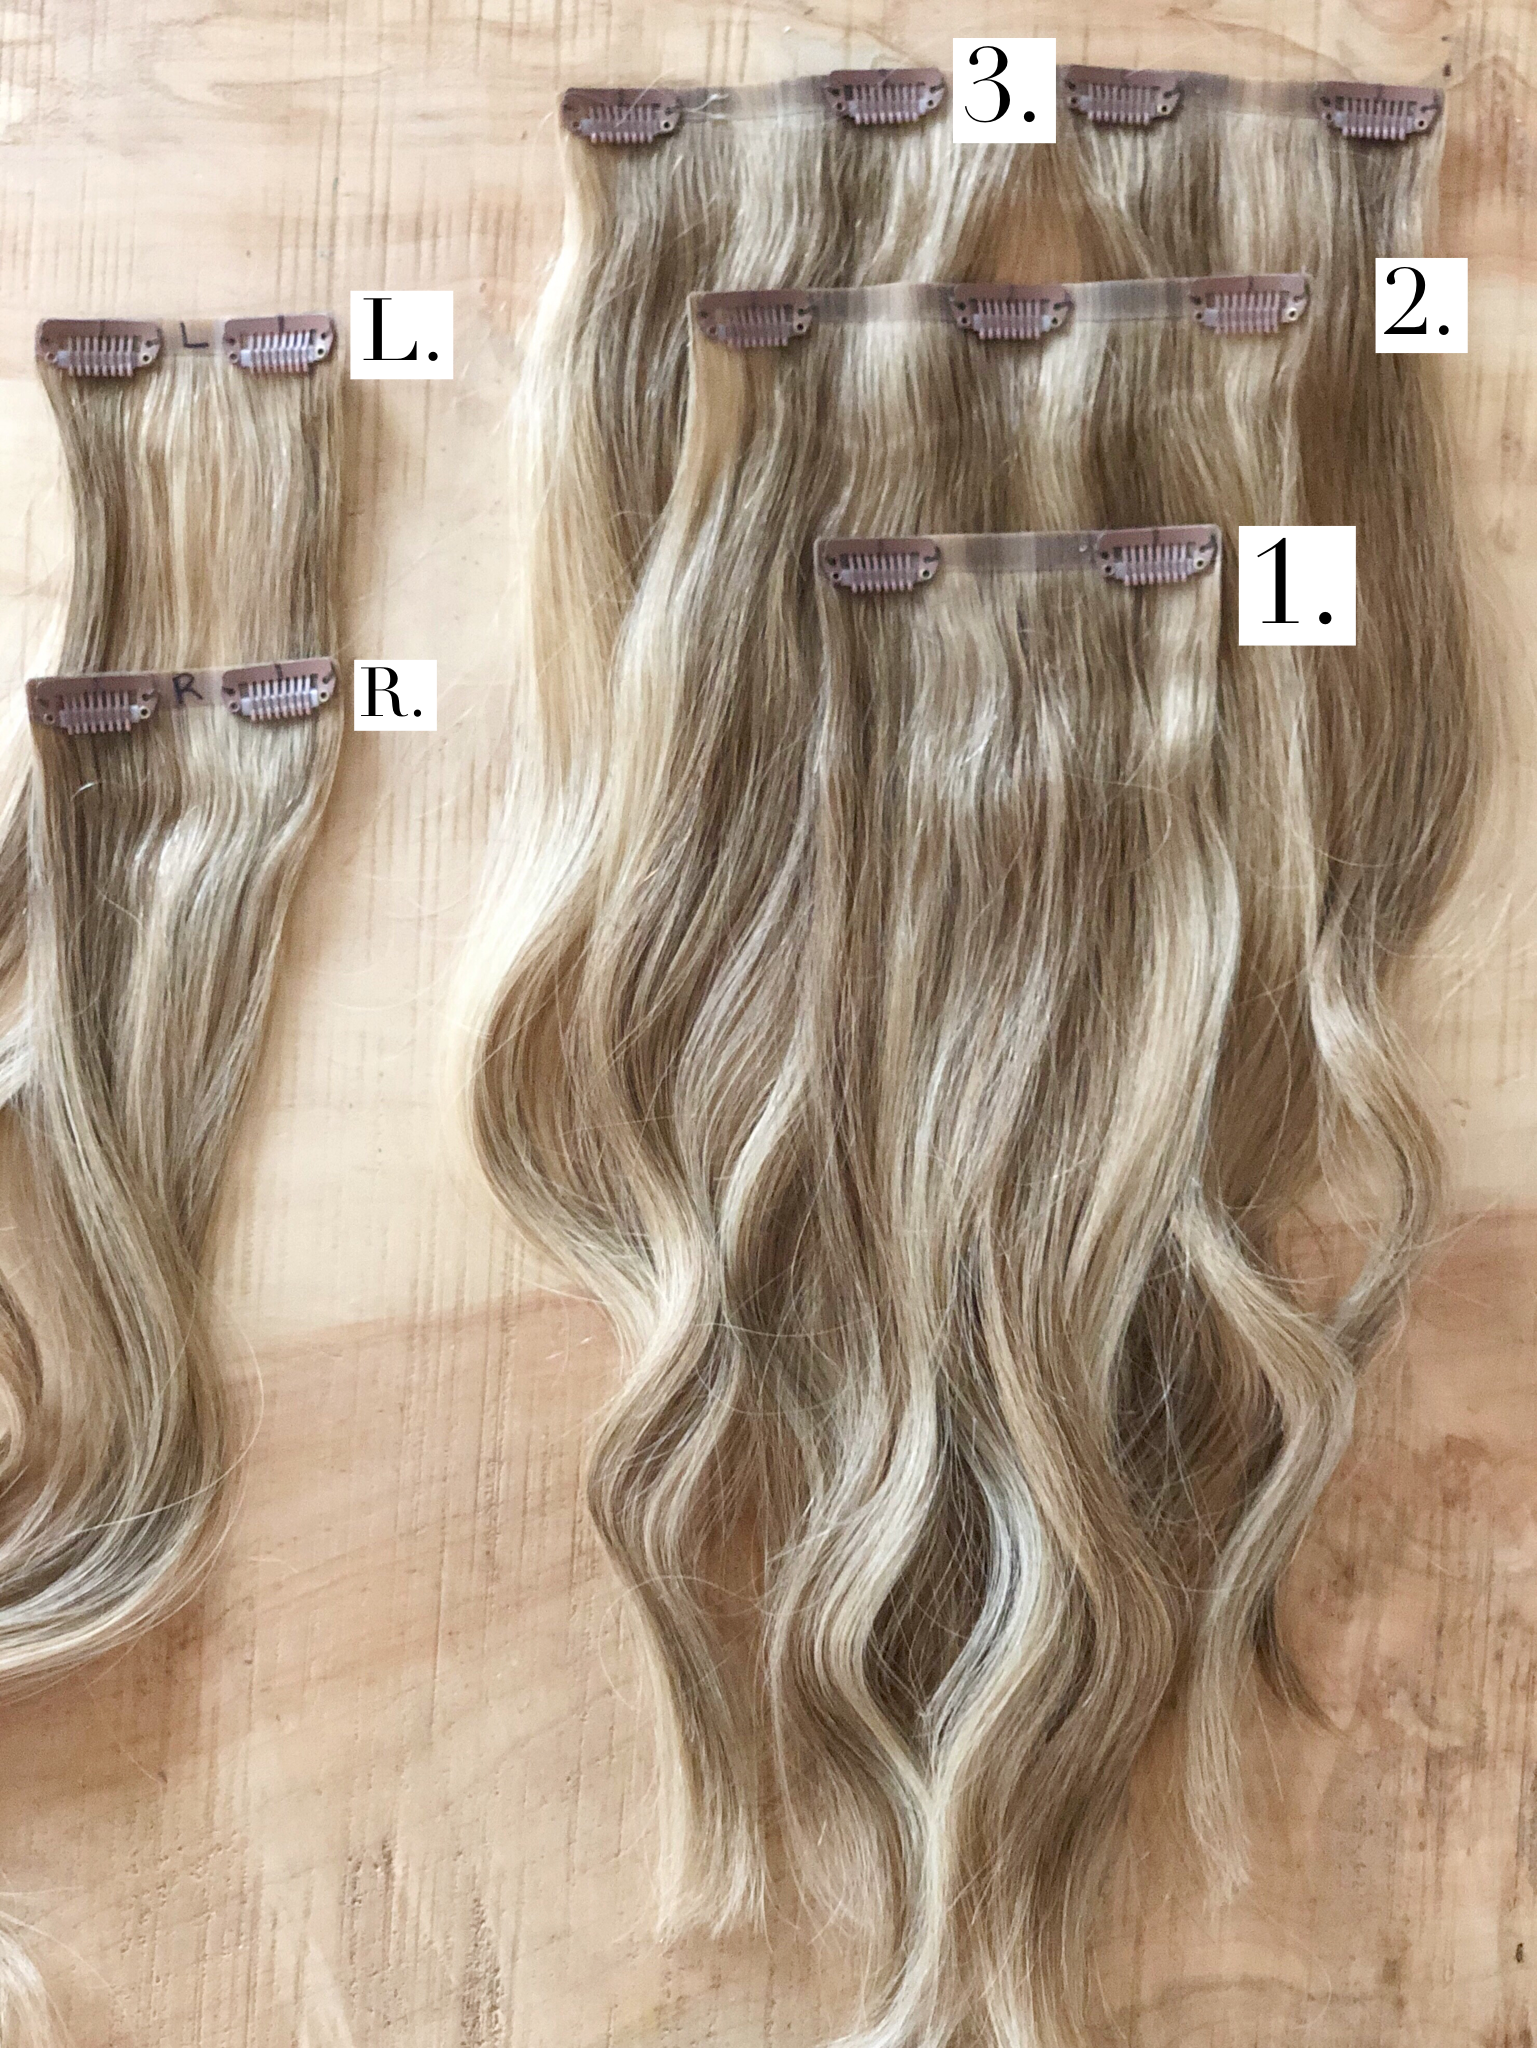 clip-in-hair-extension-tips